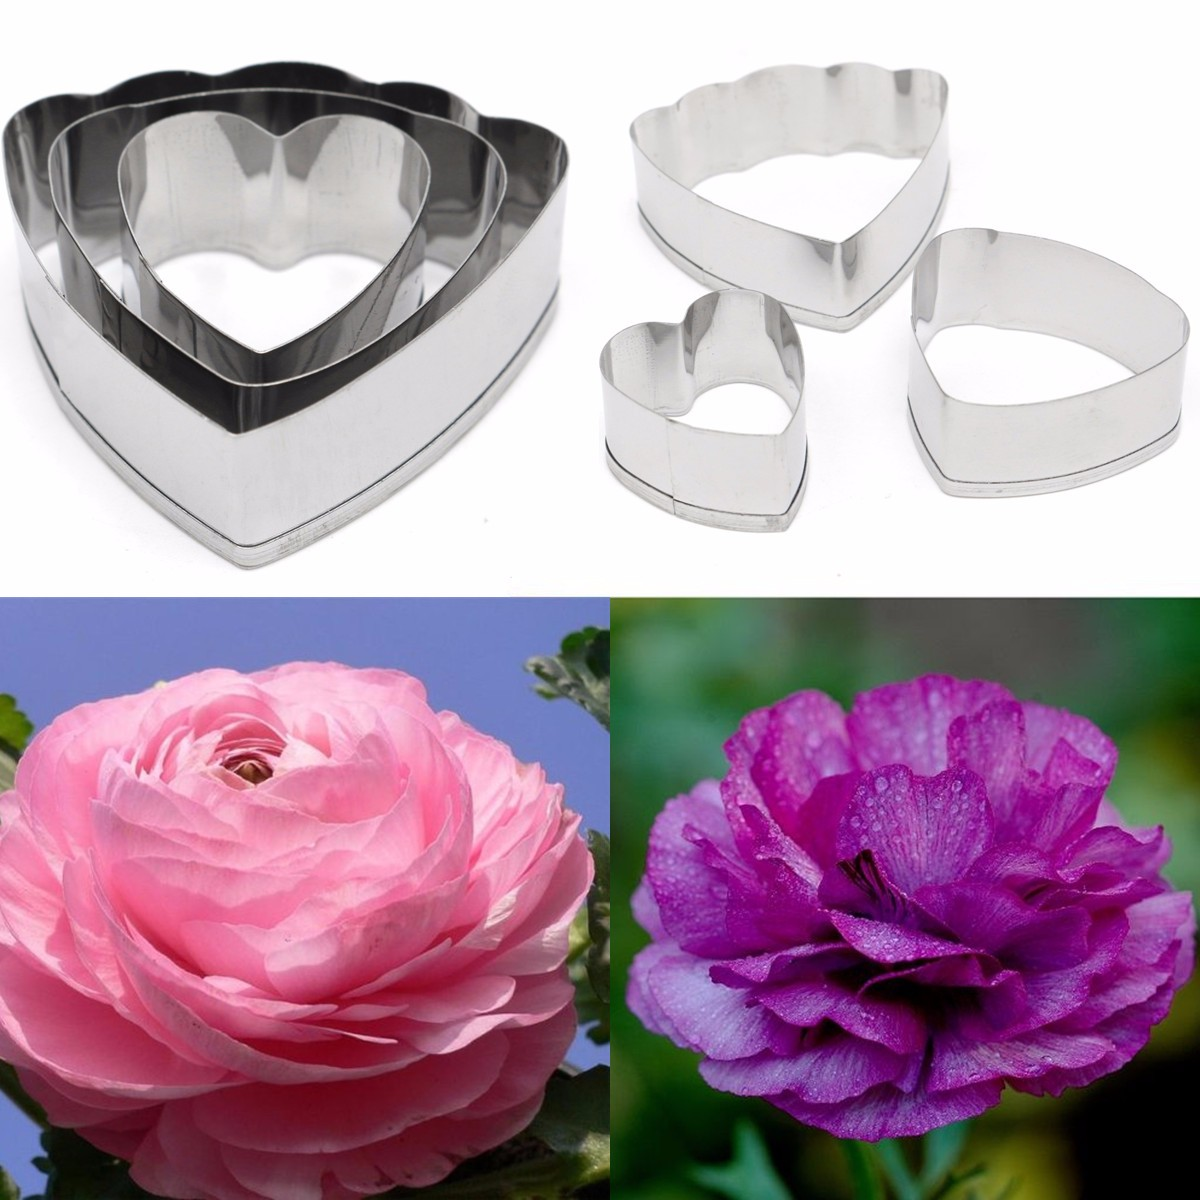 emporte pi ce p tisserie fondant fleur moule g teau biscuit cutter 15 styles ebay. Black Bedroom Furniture Sets. Home Design Ideas